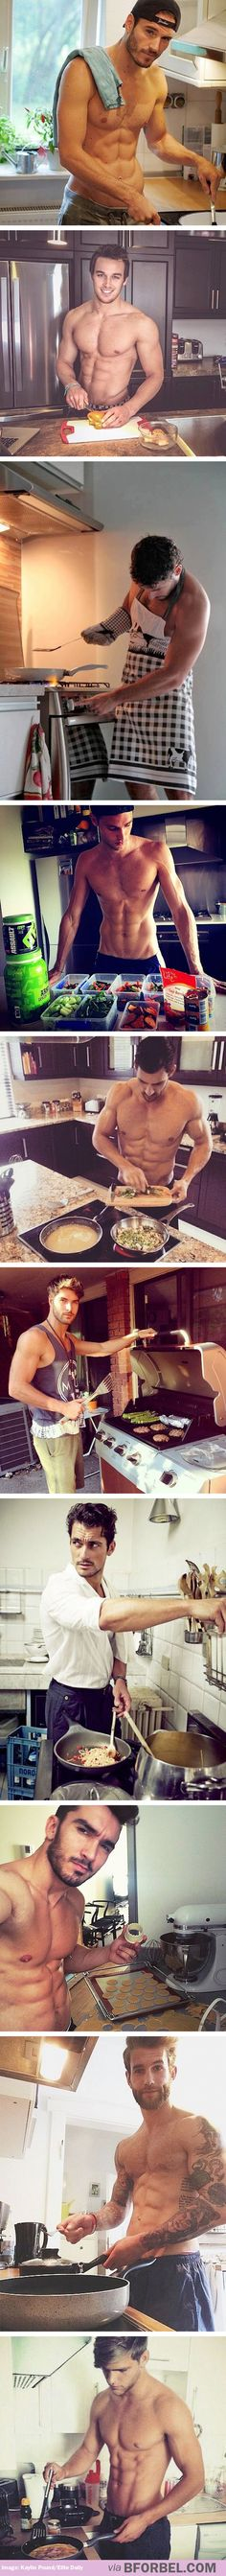 Dishy dudes cooking? Yes please!